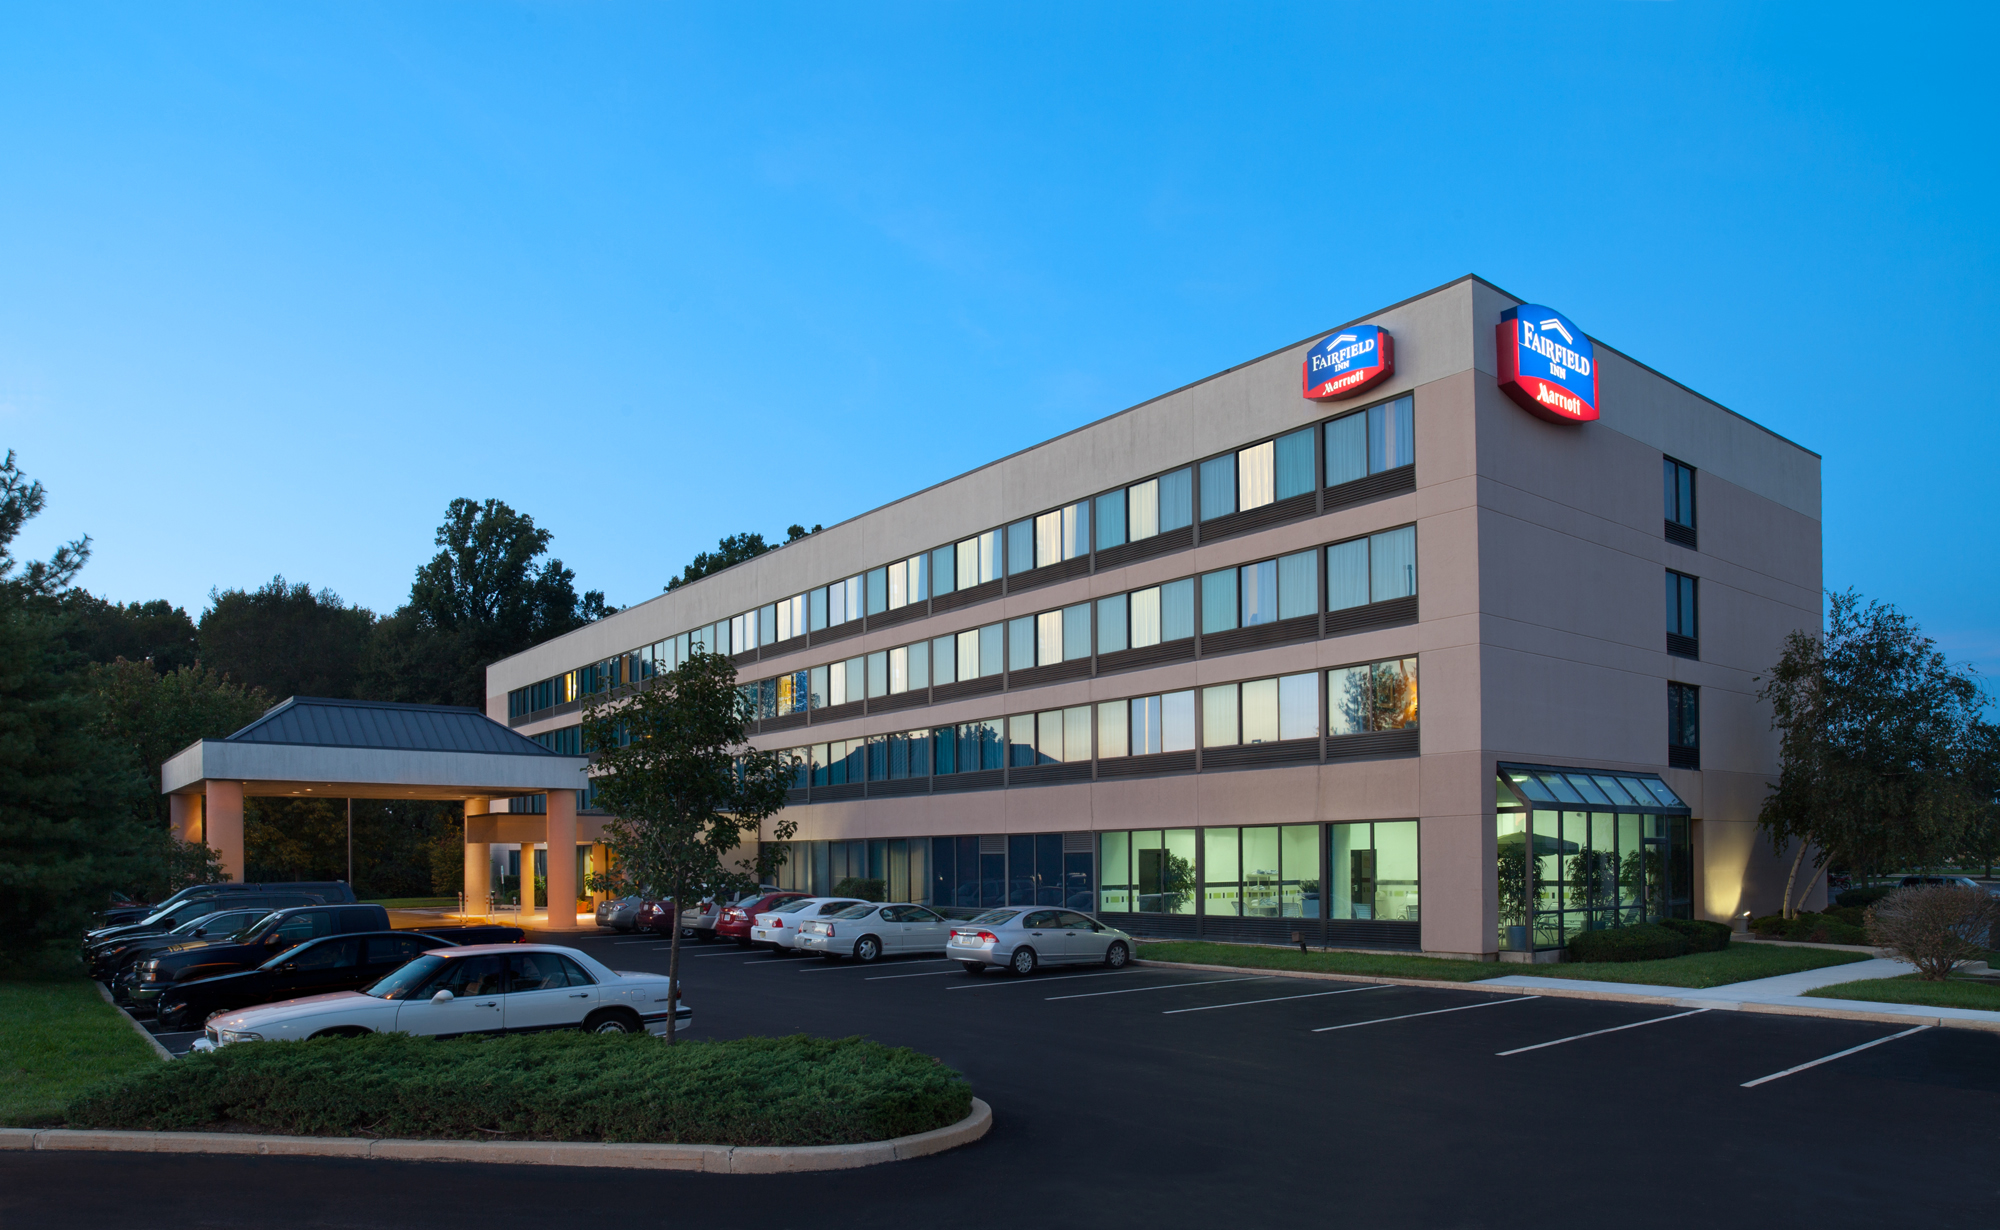 Fairfield Inn Philadelphia Exton